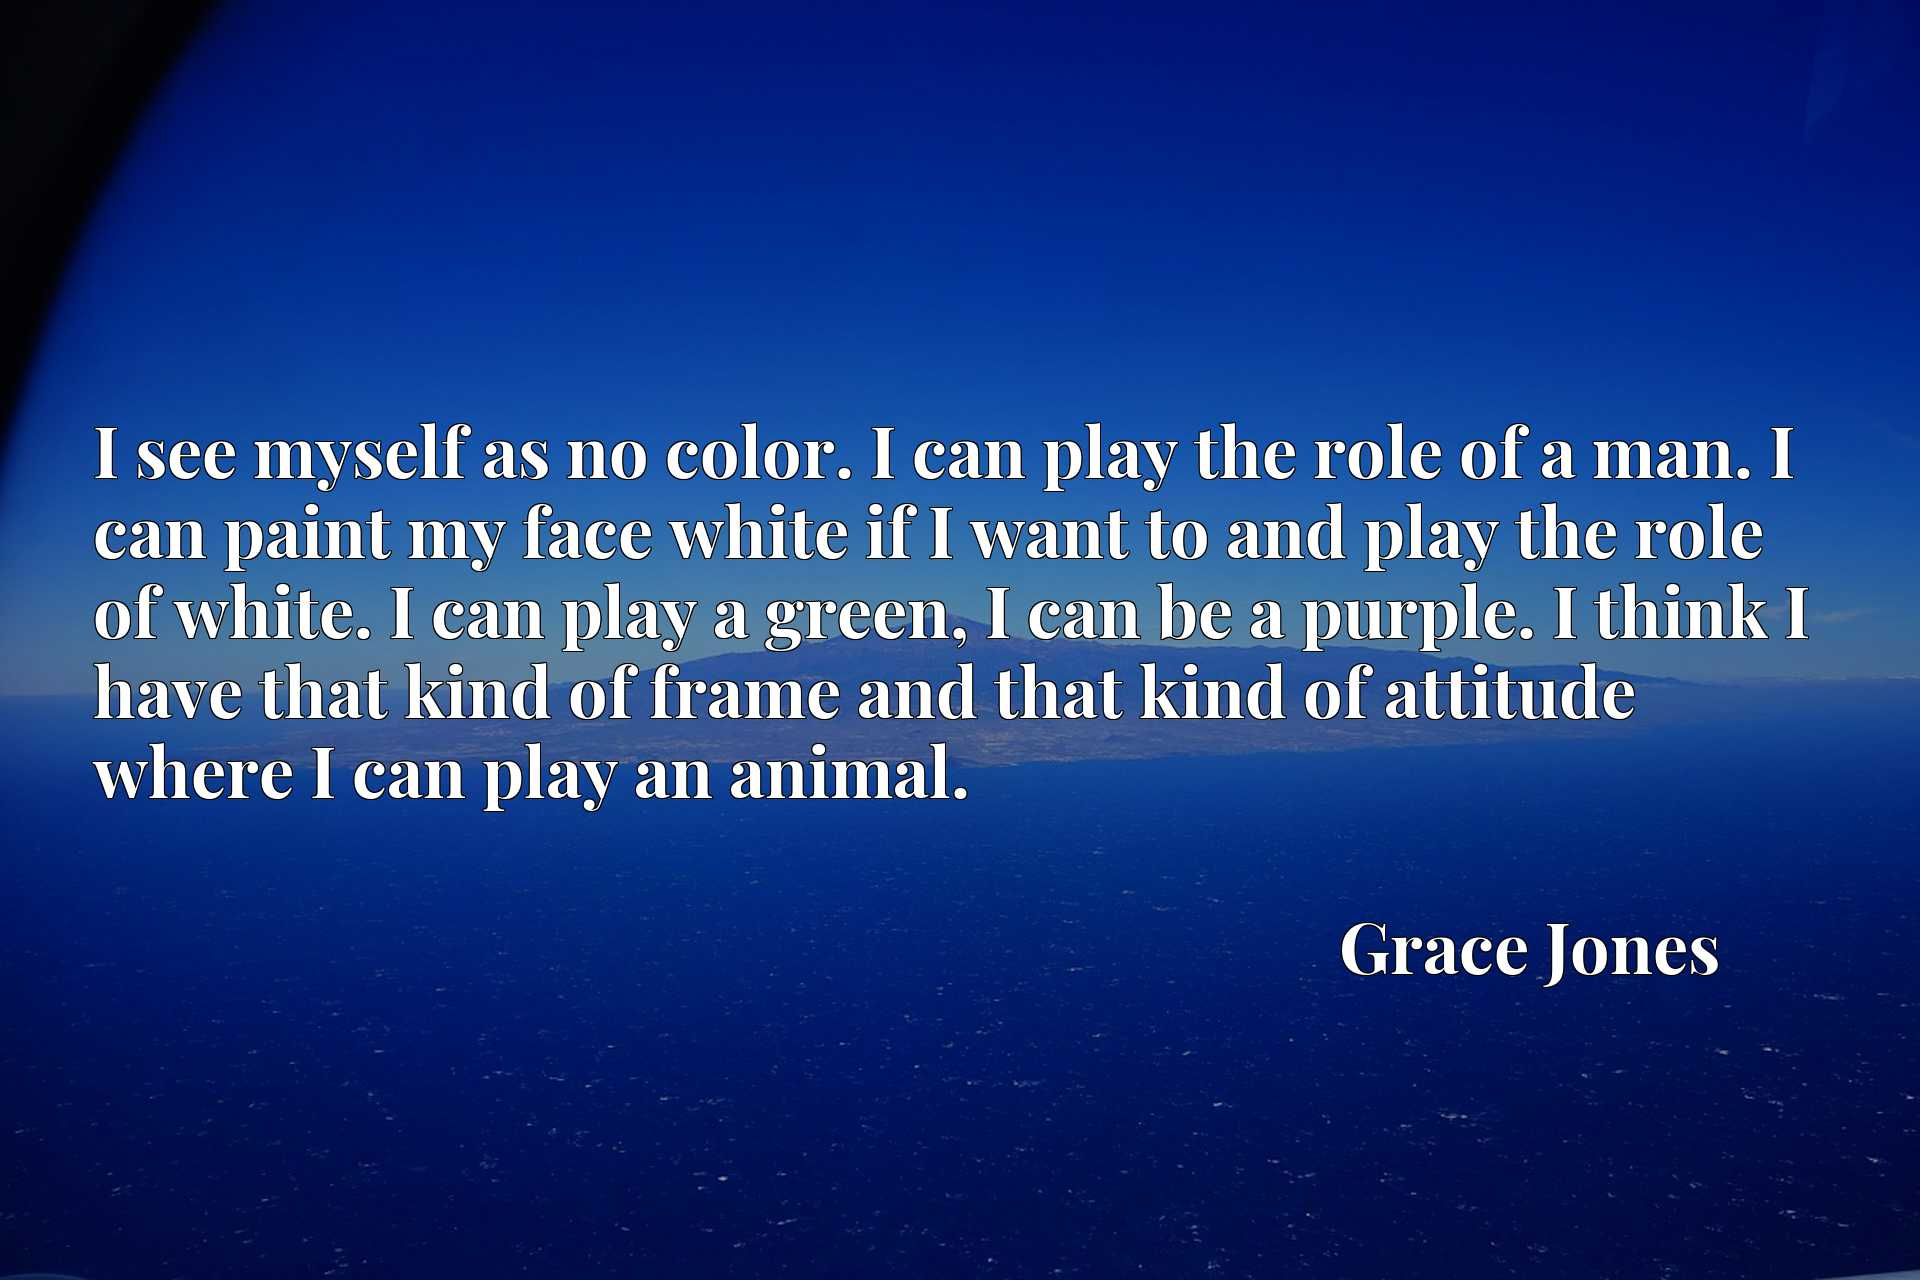 I see myself as no color. I can play the role of a man. I can paint my face white if I want to and play the role of white. I can play a green, I can be a purple. I think I have that kind of frame and that kind of attitude where I can play an animal.